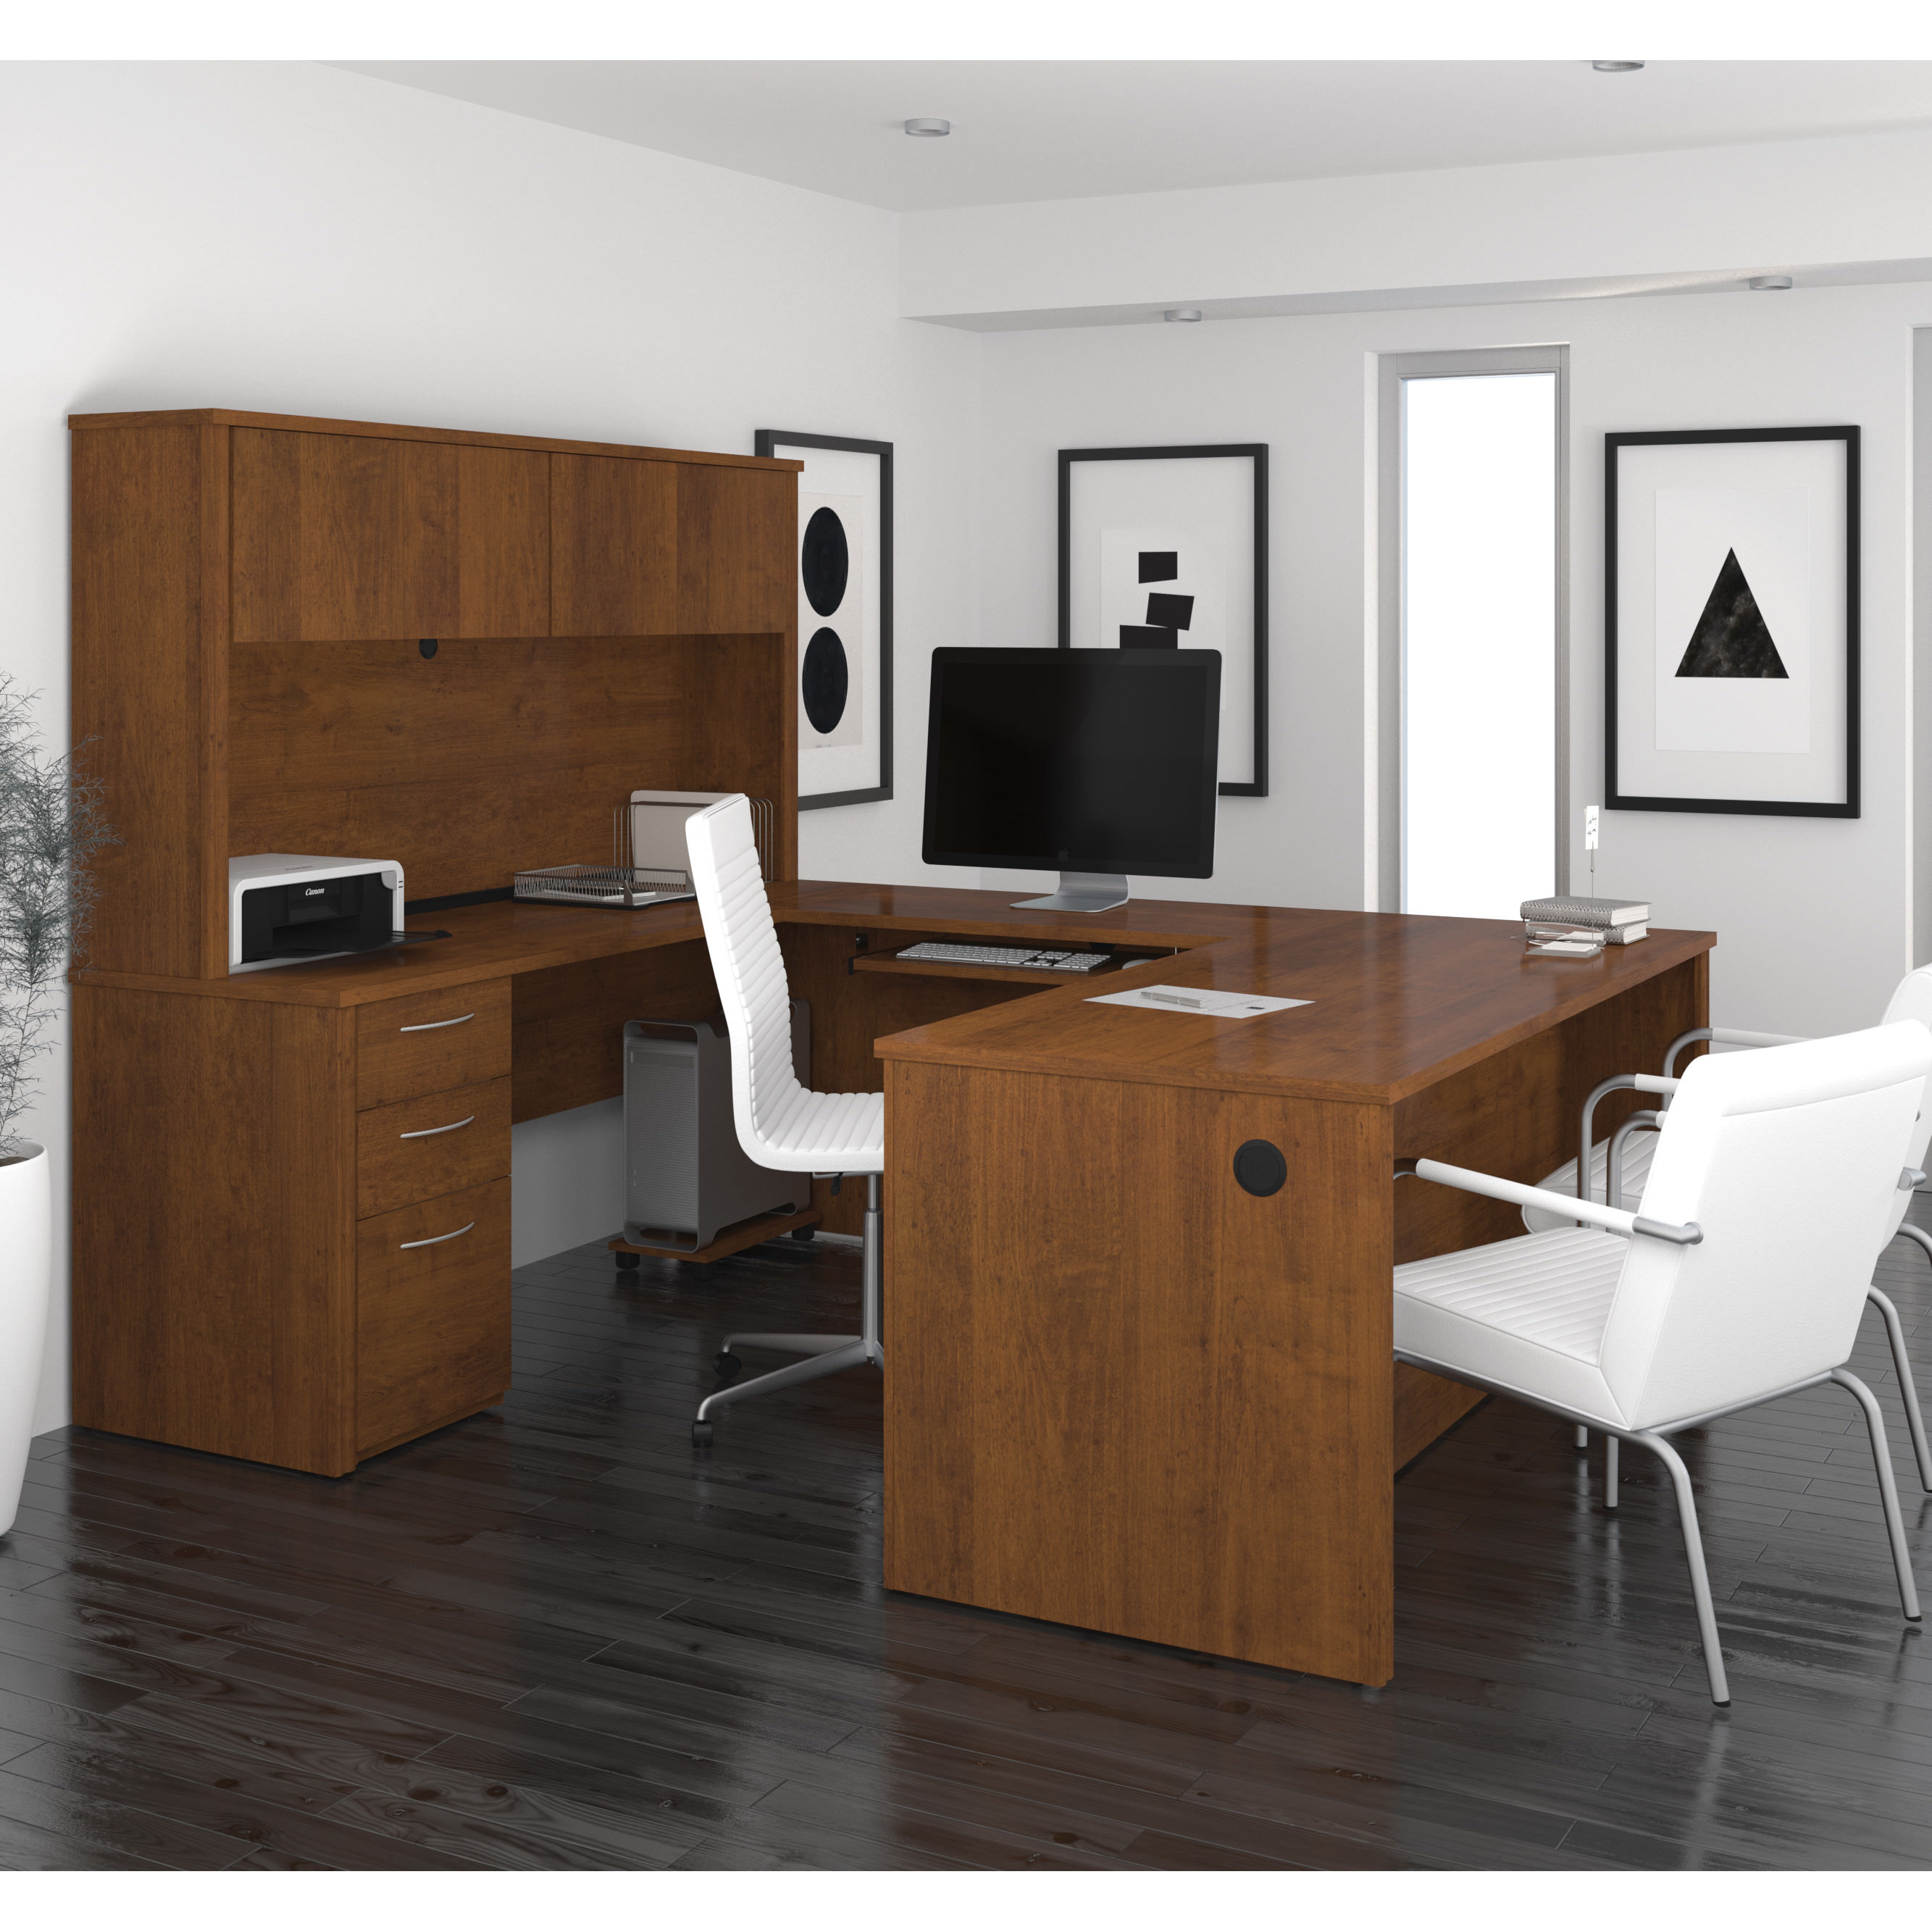 guy brown office chairs bathroom vanity 30 computer desk options buying guide for 2018